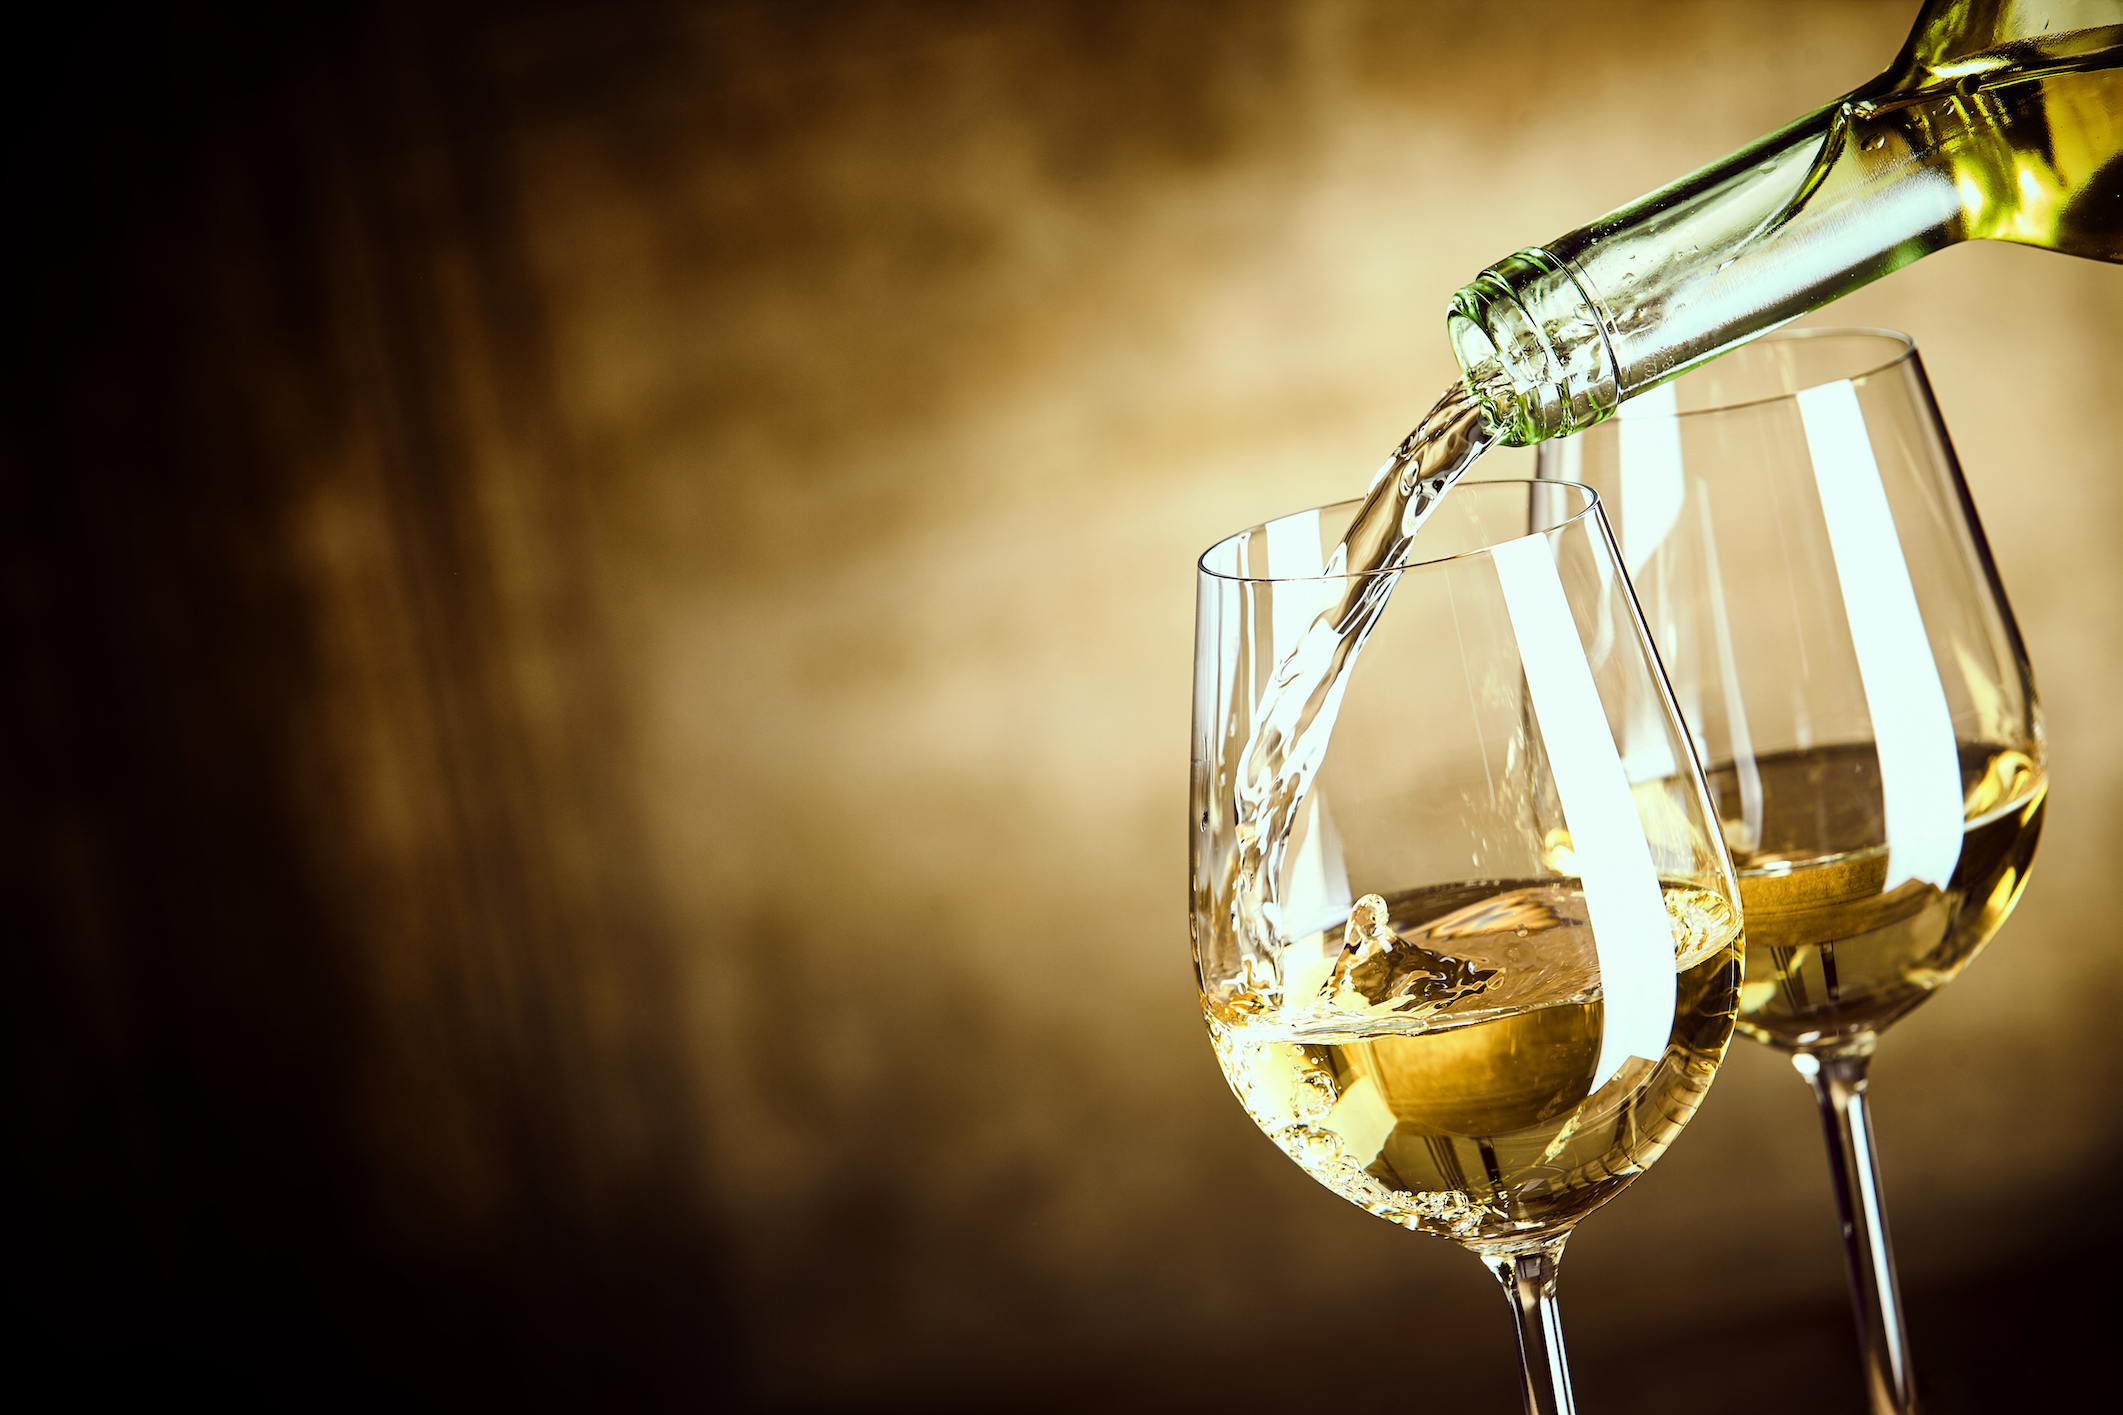 What is the one activity that engages the most parts of our brains? It's sipping a glass of wine, according to Gordon Shepherd.